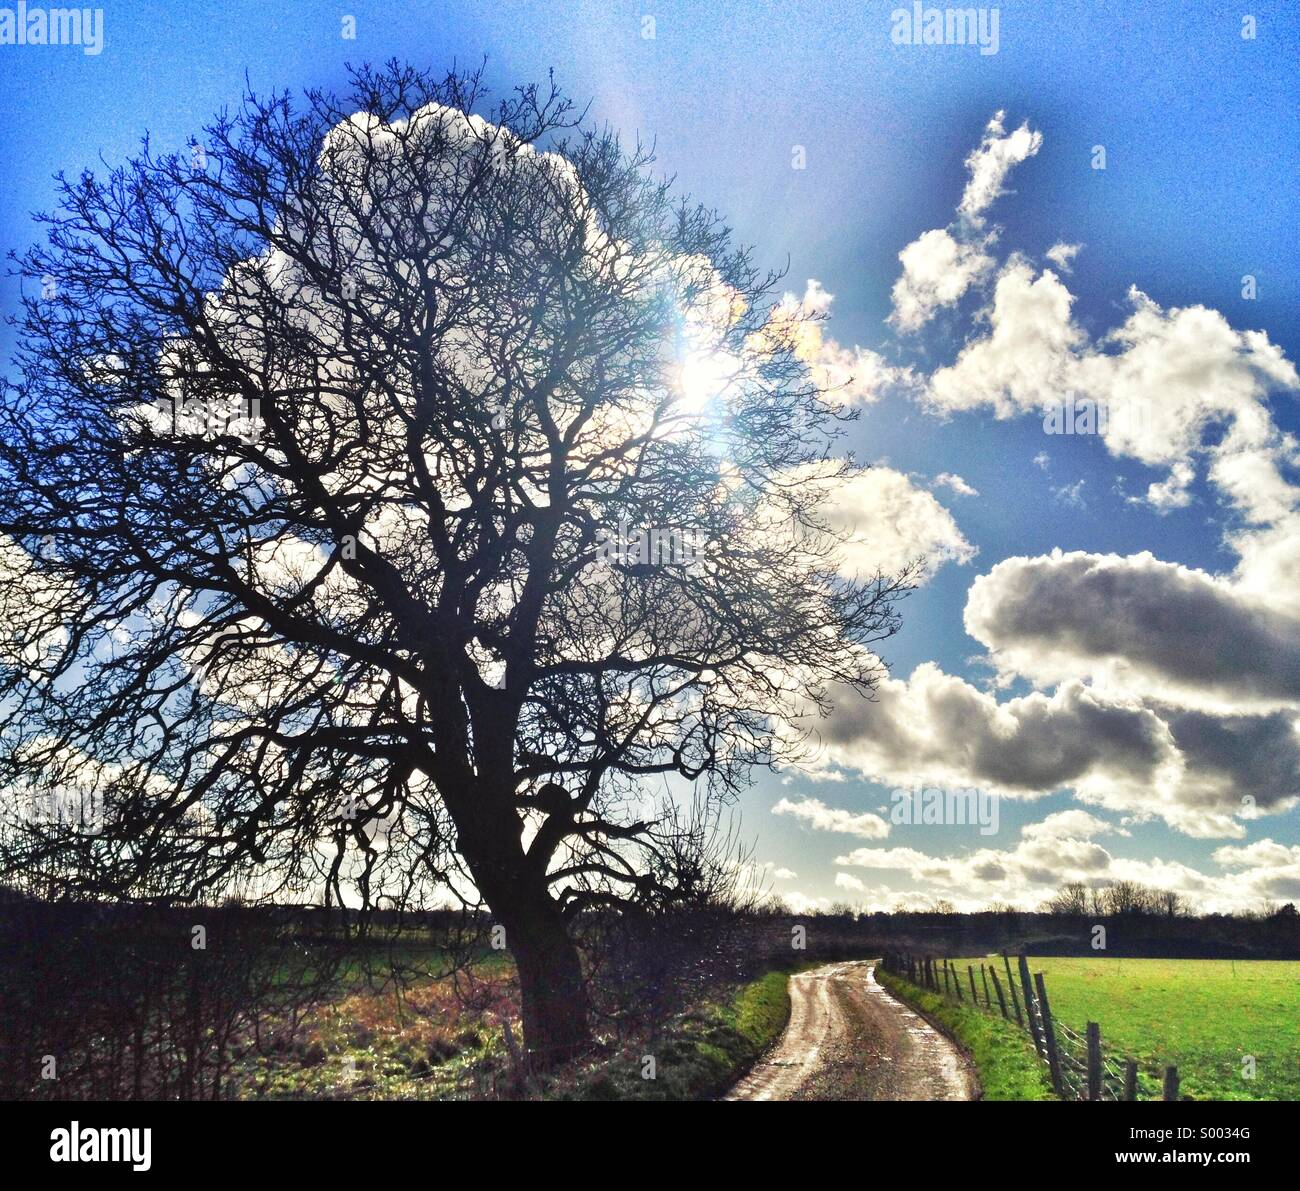 Rural lane, walnut tree and cloudy sky - Stock Image